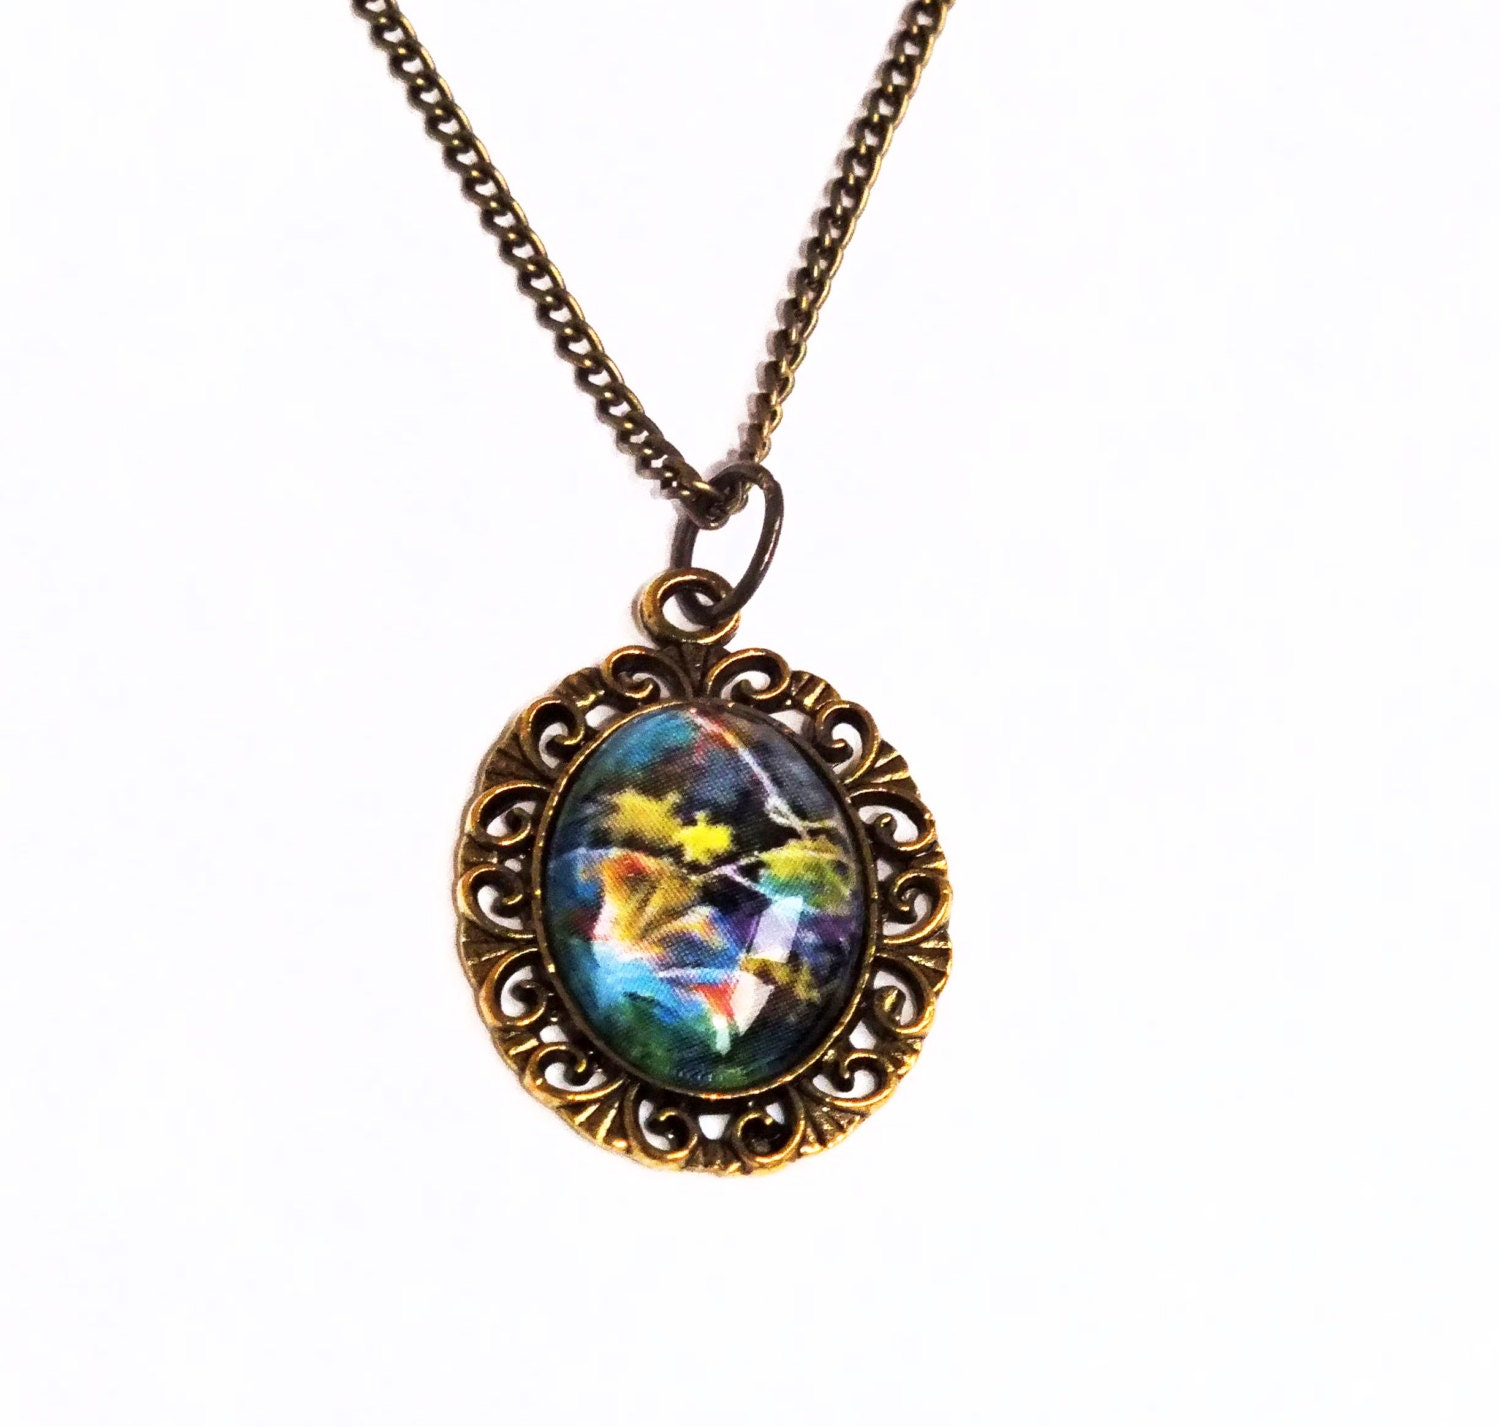 Floral Necklace Romantic Jewelry Colorful Jewelry Glass. Purple Engagement Rings. Seahorse Necklace. Kidney Bracelet. 10k Diamond Necklace. Metal Wedding Rings. Large Diamond Rings. Wood Inlay Watches. Mens Gold Bangle